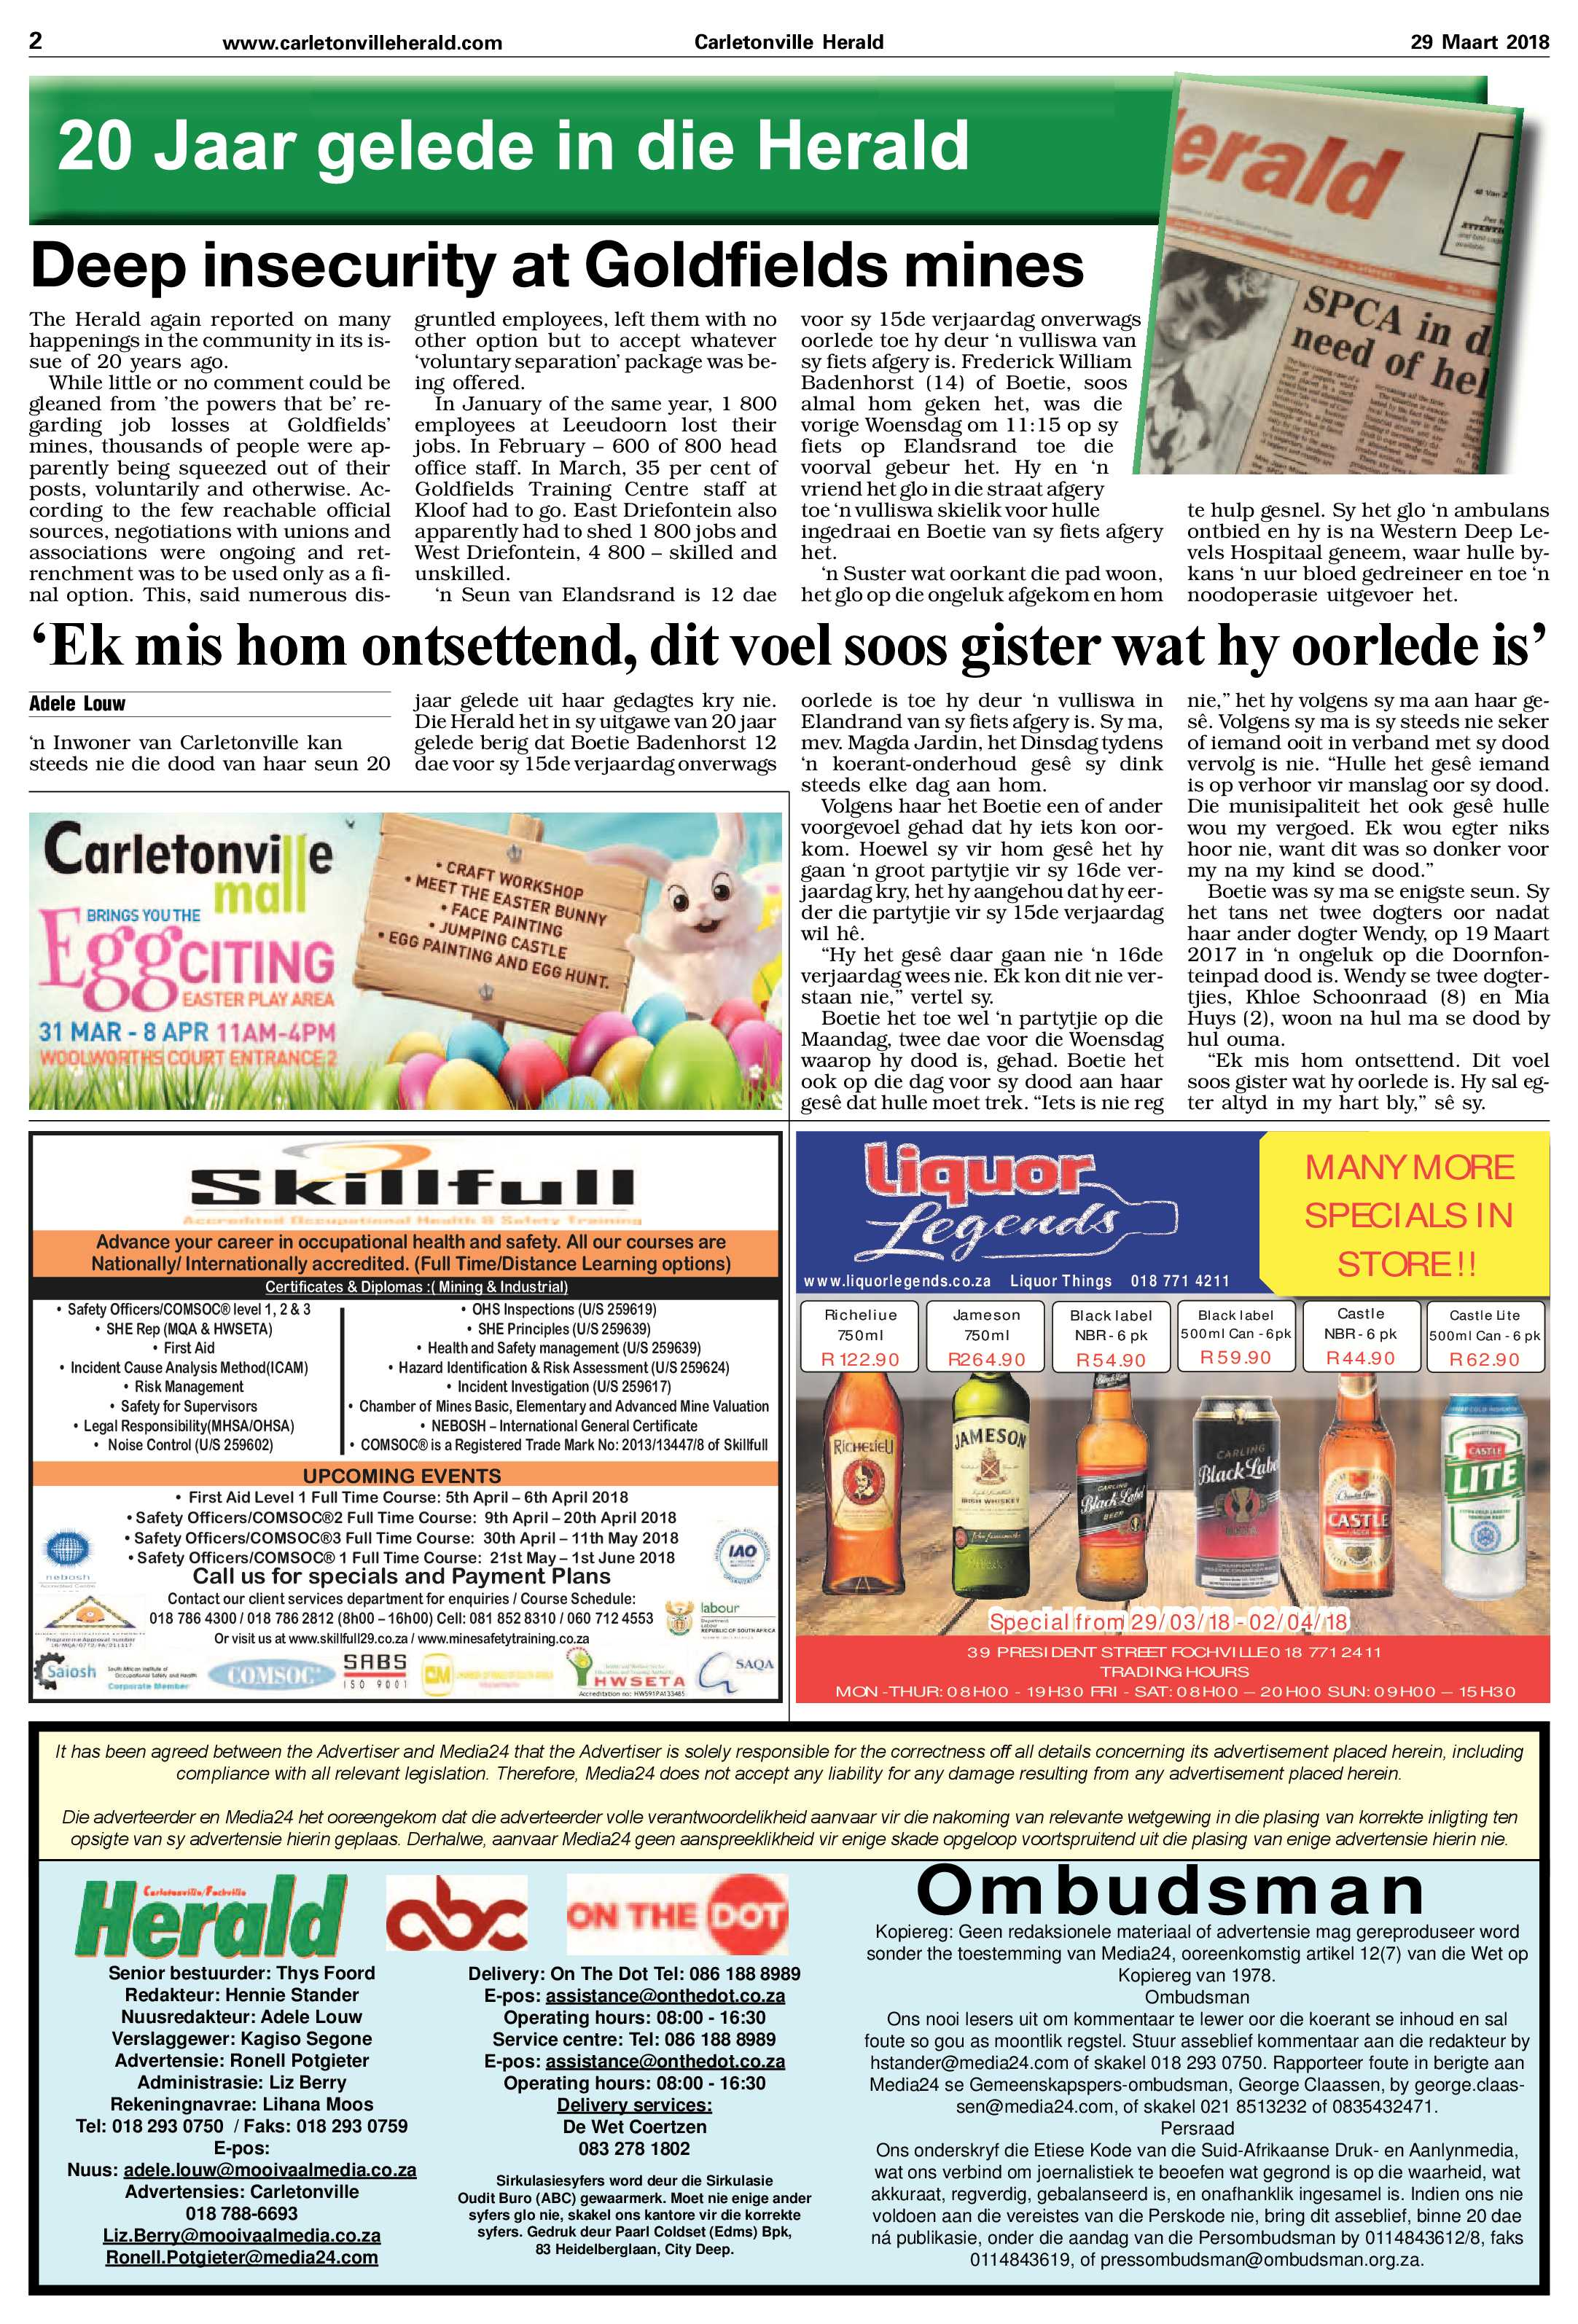 29-march-2018-epapers-page-2